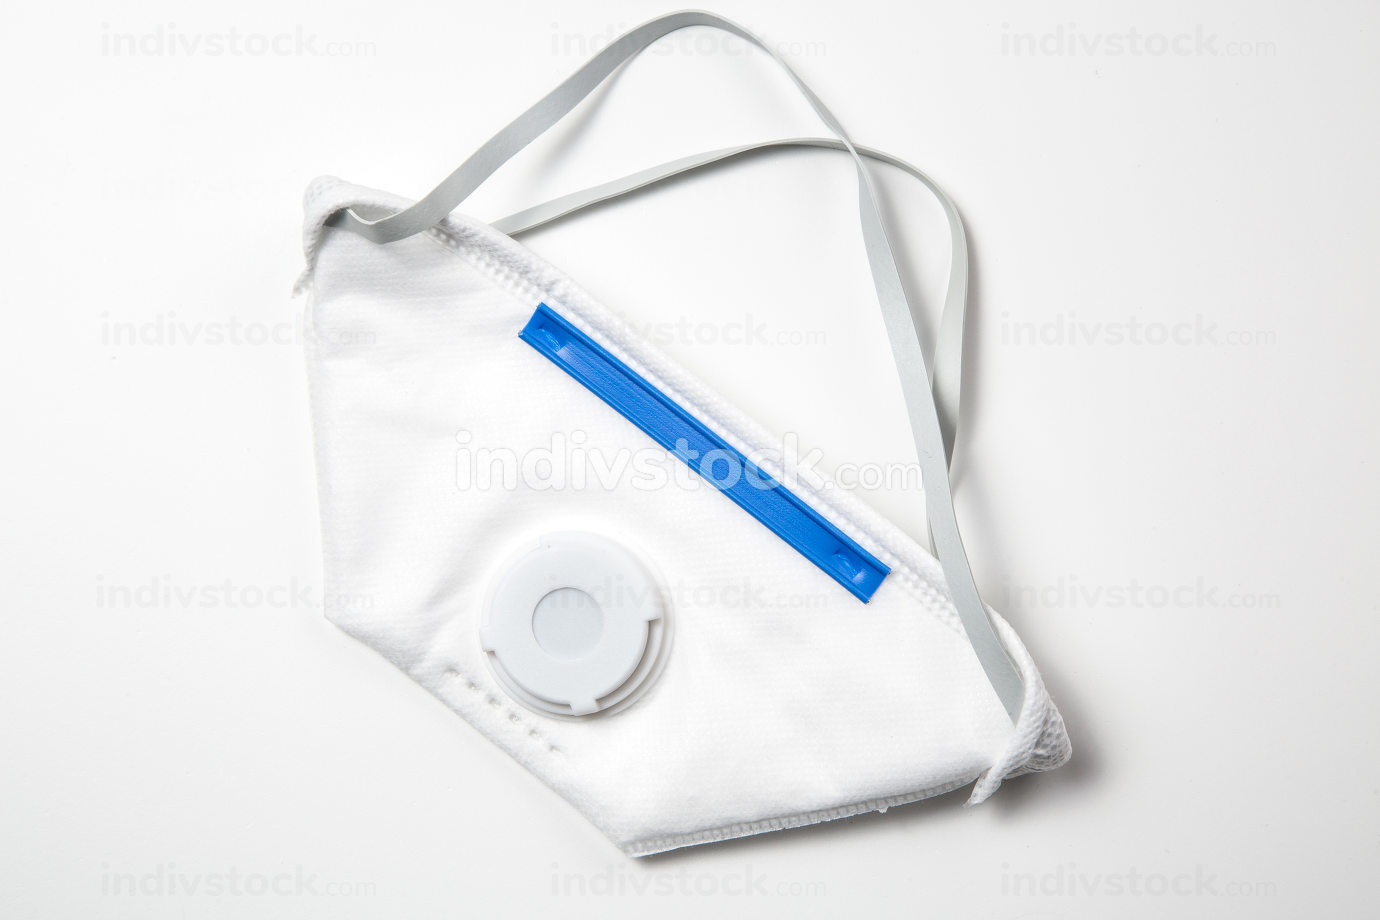 white medical protective mask against viruses and infections on a white background